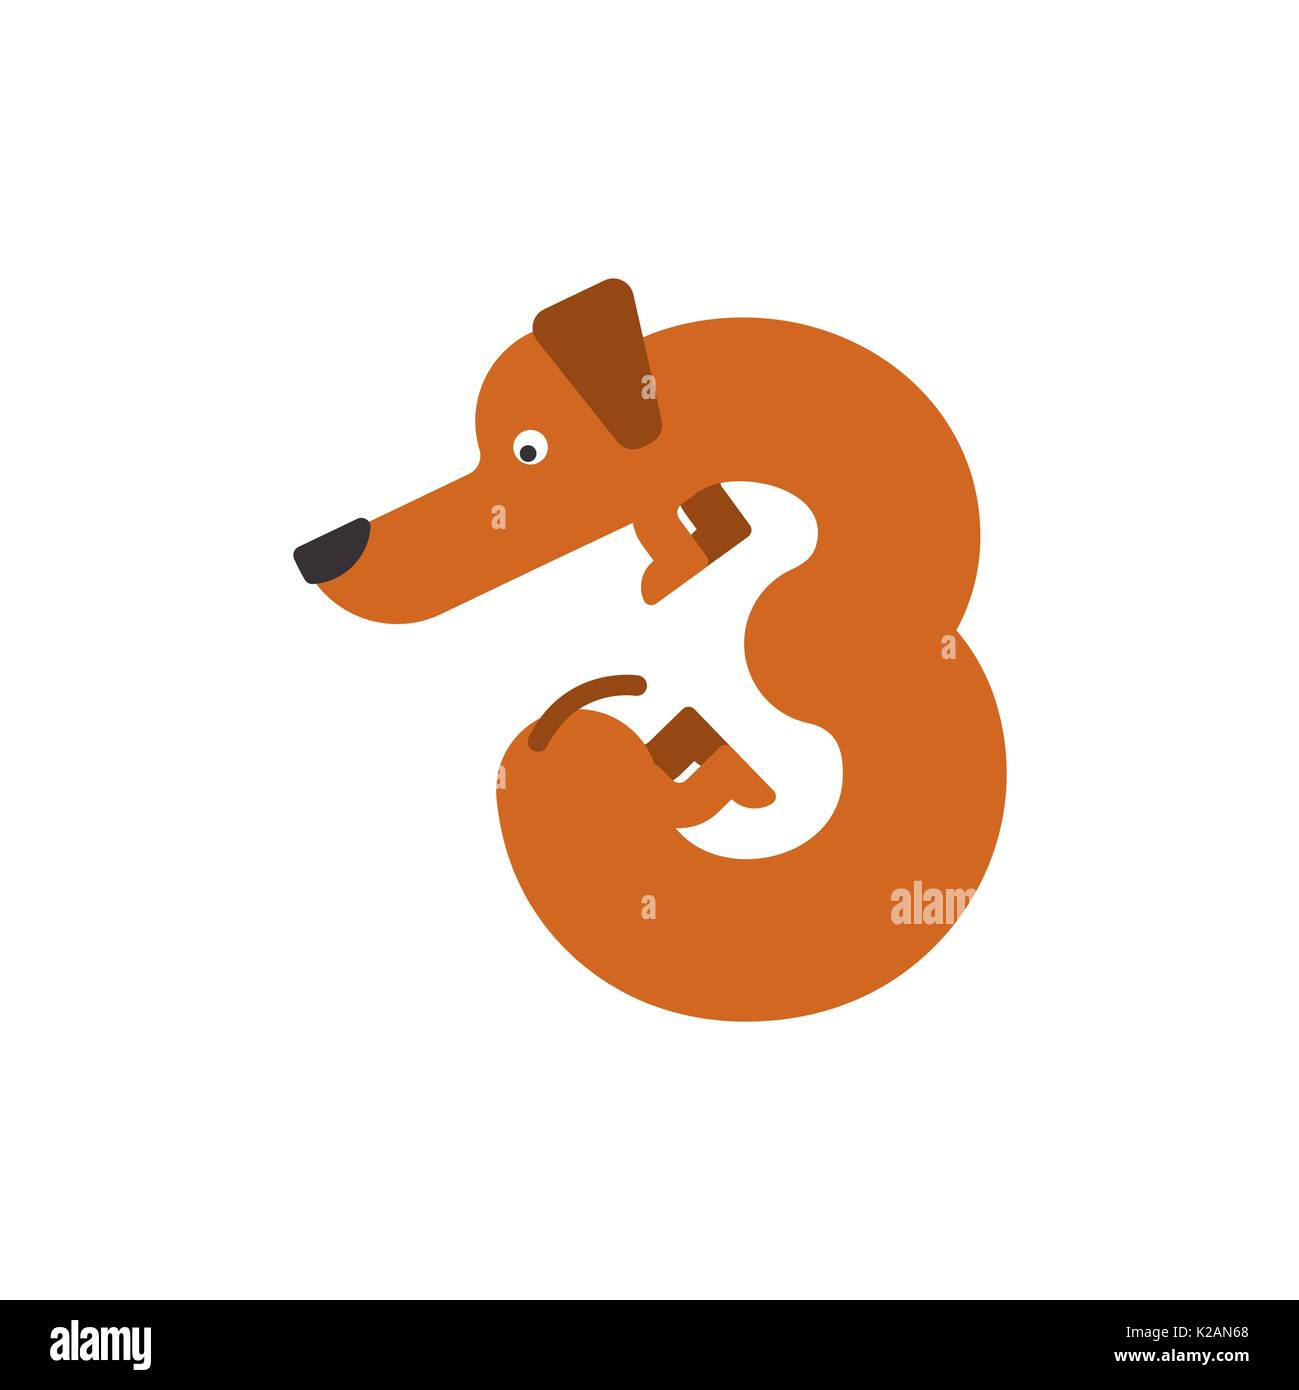 Figure 3 Dog Dachshund Font Three Home Pet Abc Symbol Home Animal